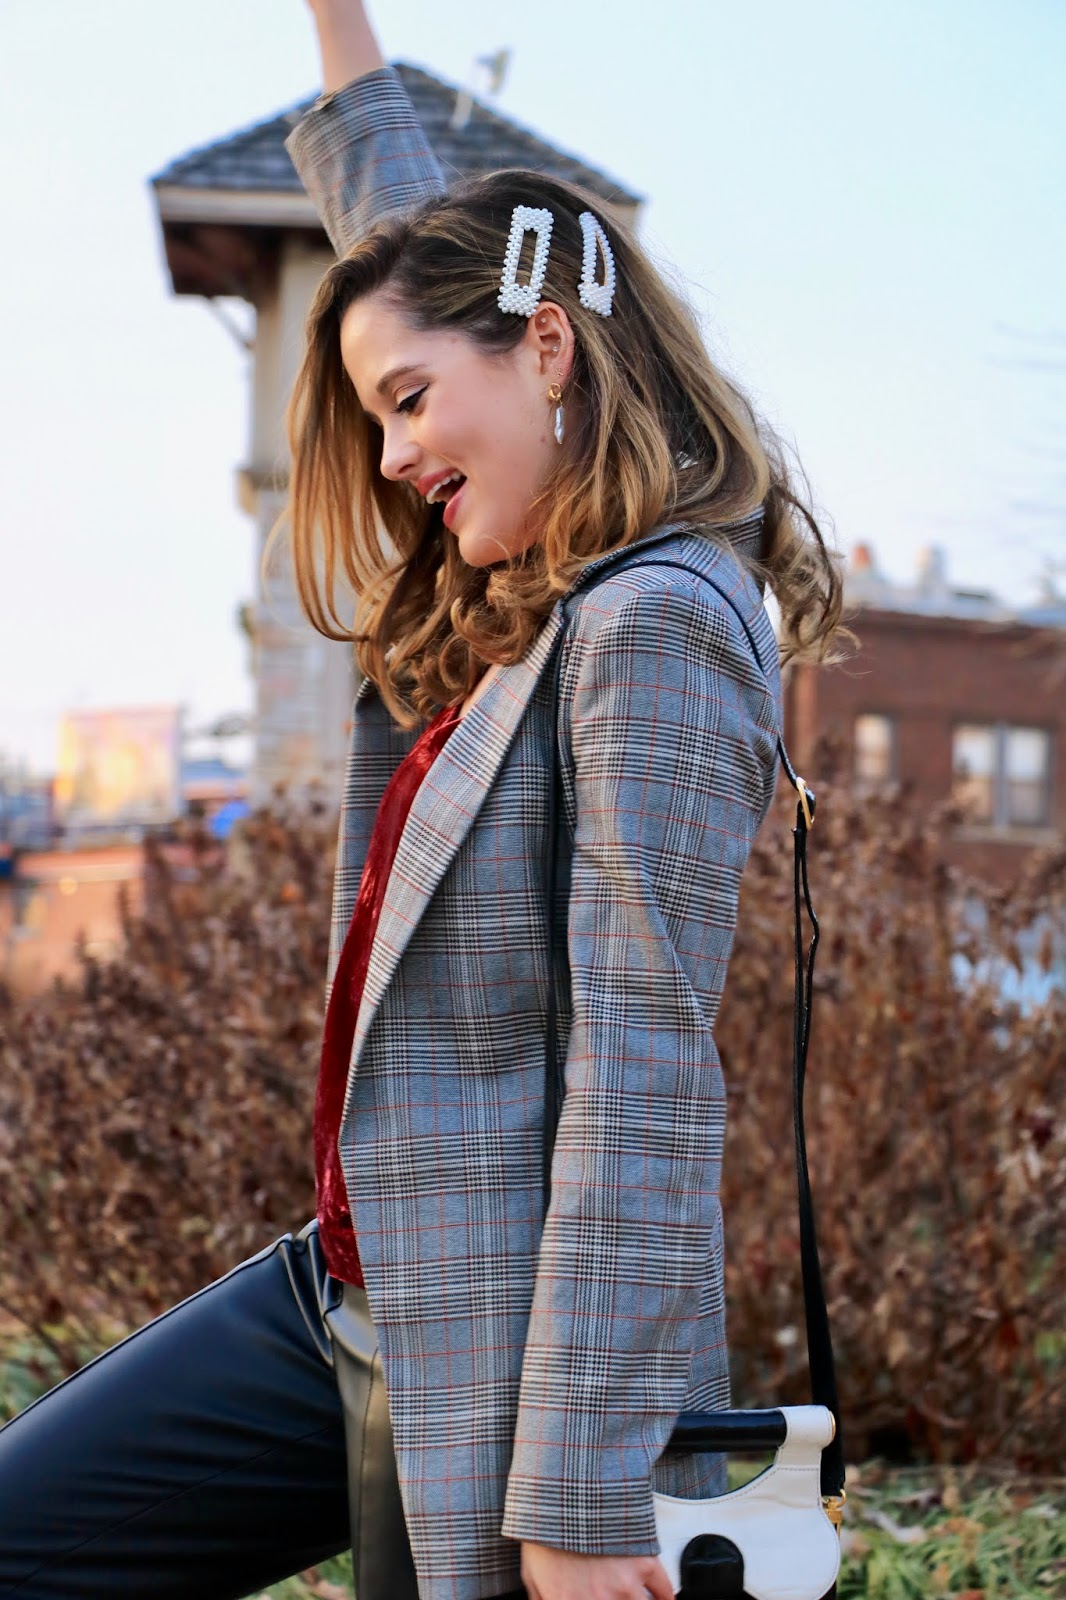 Nyc fashion blogger Kathleen Harper's Valentine's Day outfit.